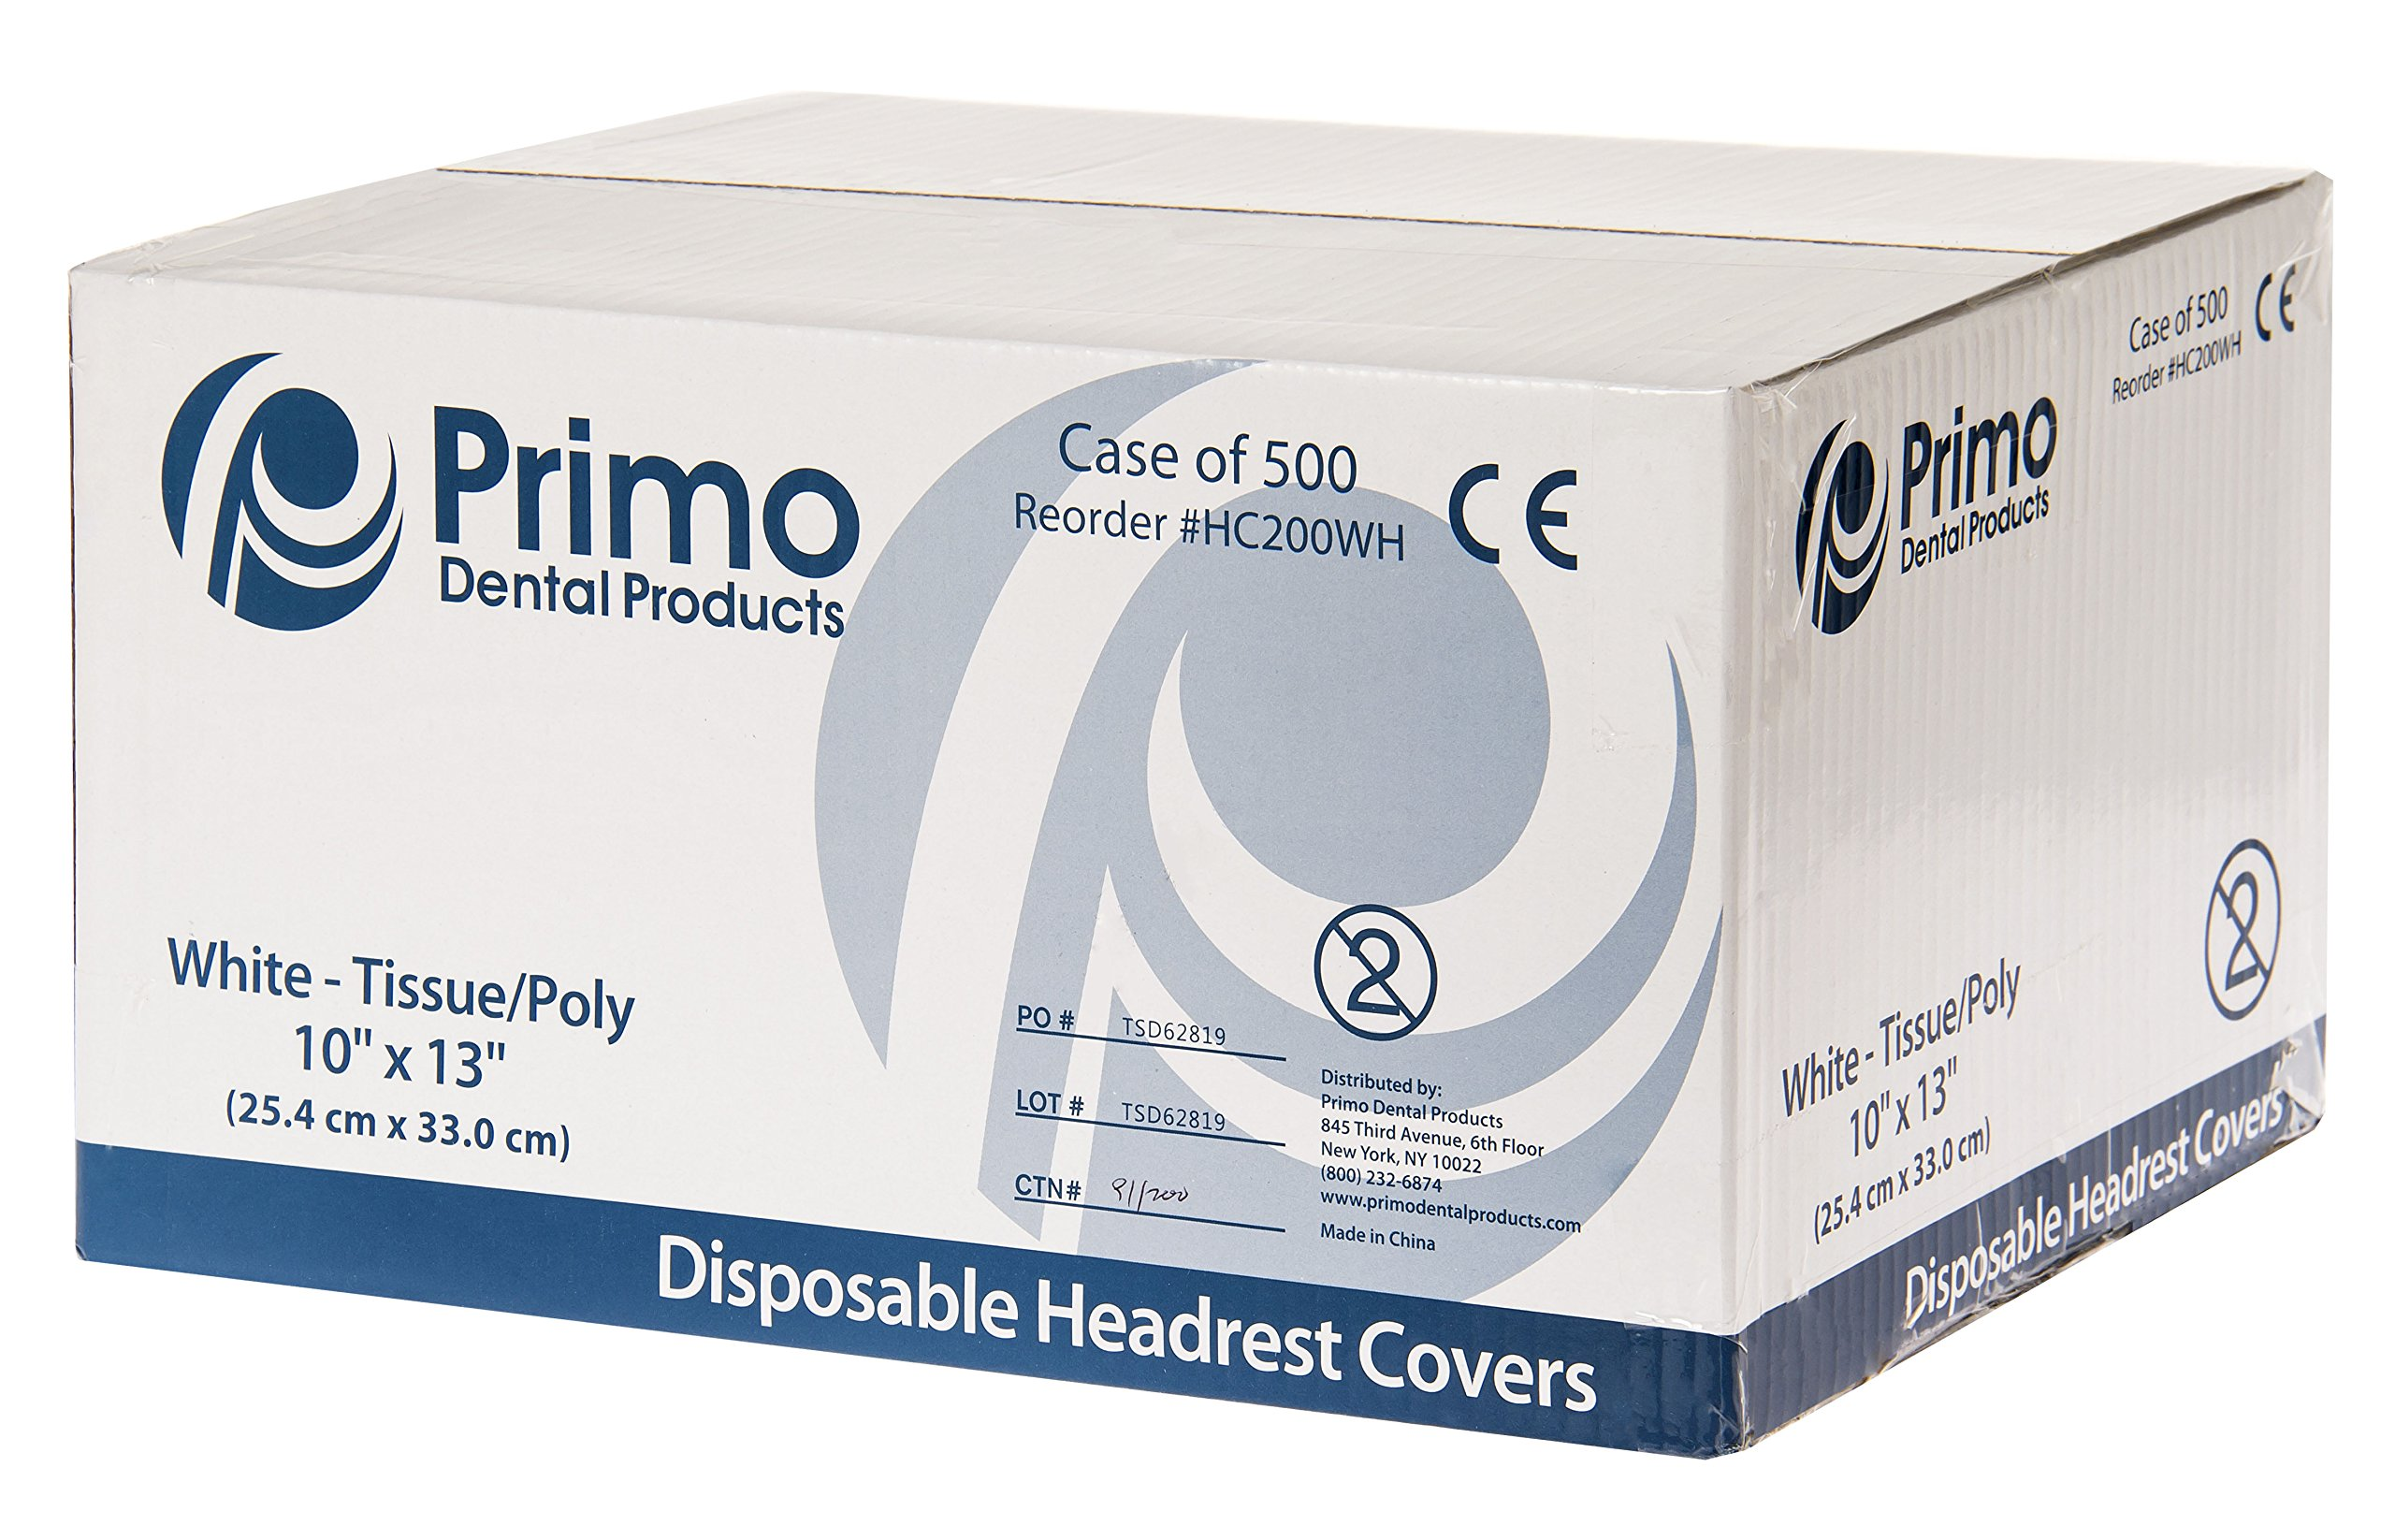 Primo Dental Products HC200WH Headrest Covers Paper Tissue Poly, 10'' x 13'', White (Pack of 500) by Primo Dental Products